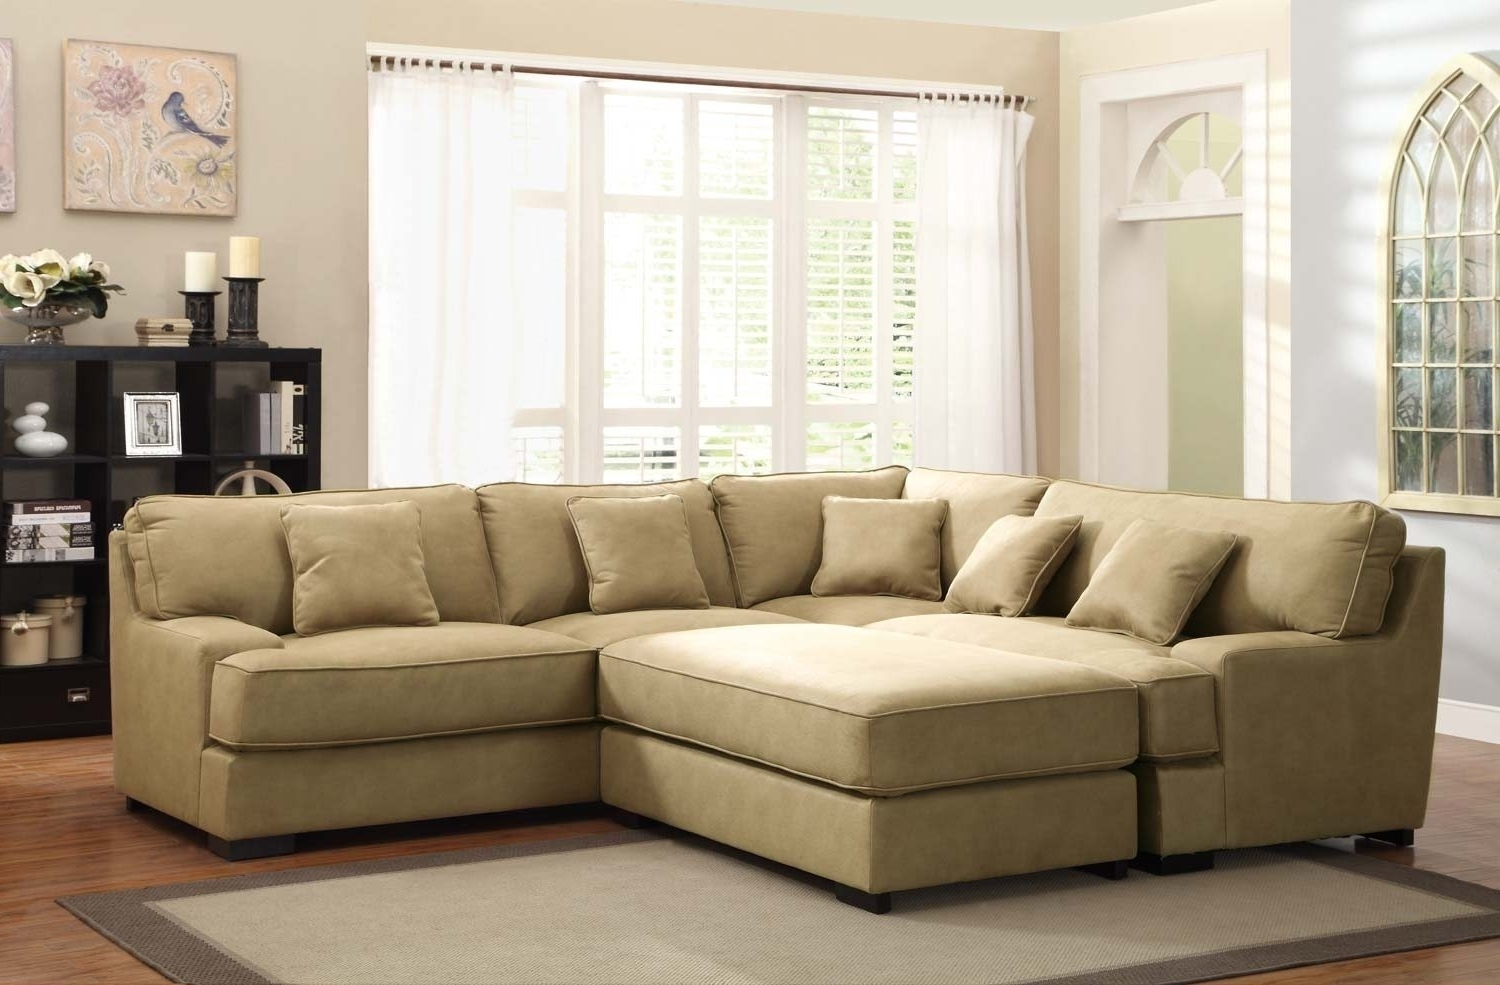 Current Sectionals With Oversized Ottoman Inside Sofa : Modern Oversized Sectional Sofa Oversized Sectional Sofas (View 12 of 15)